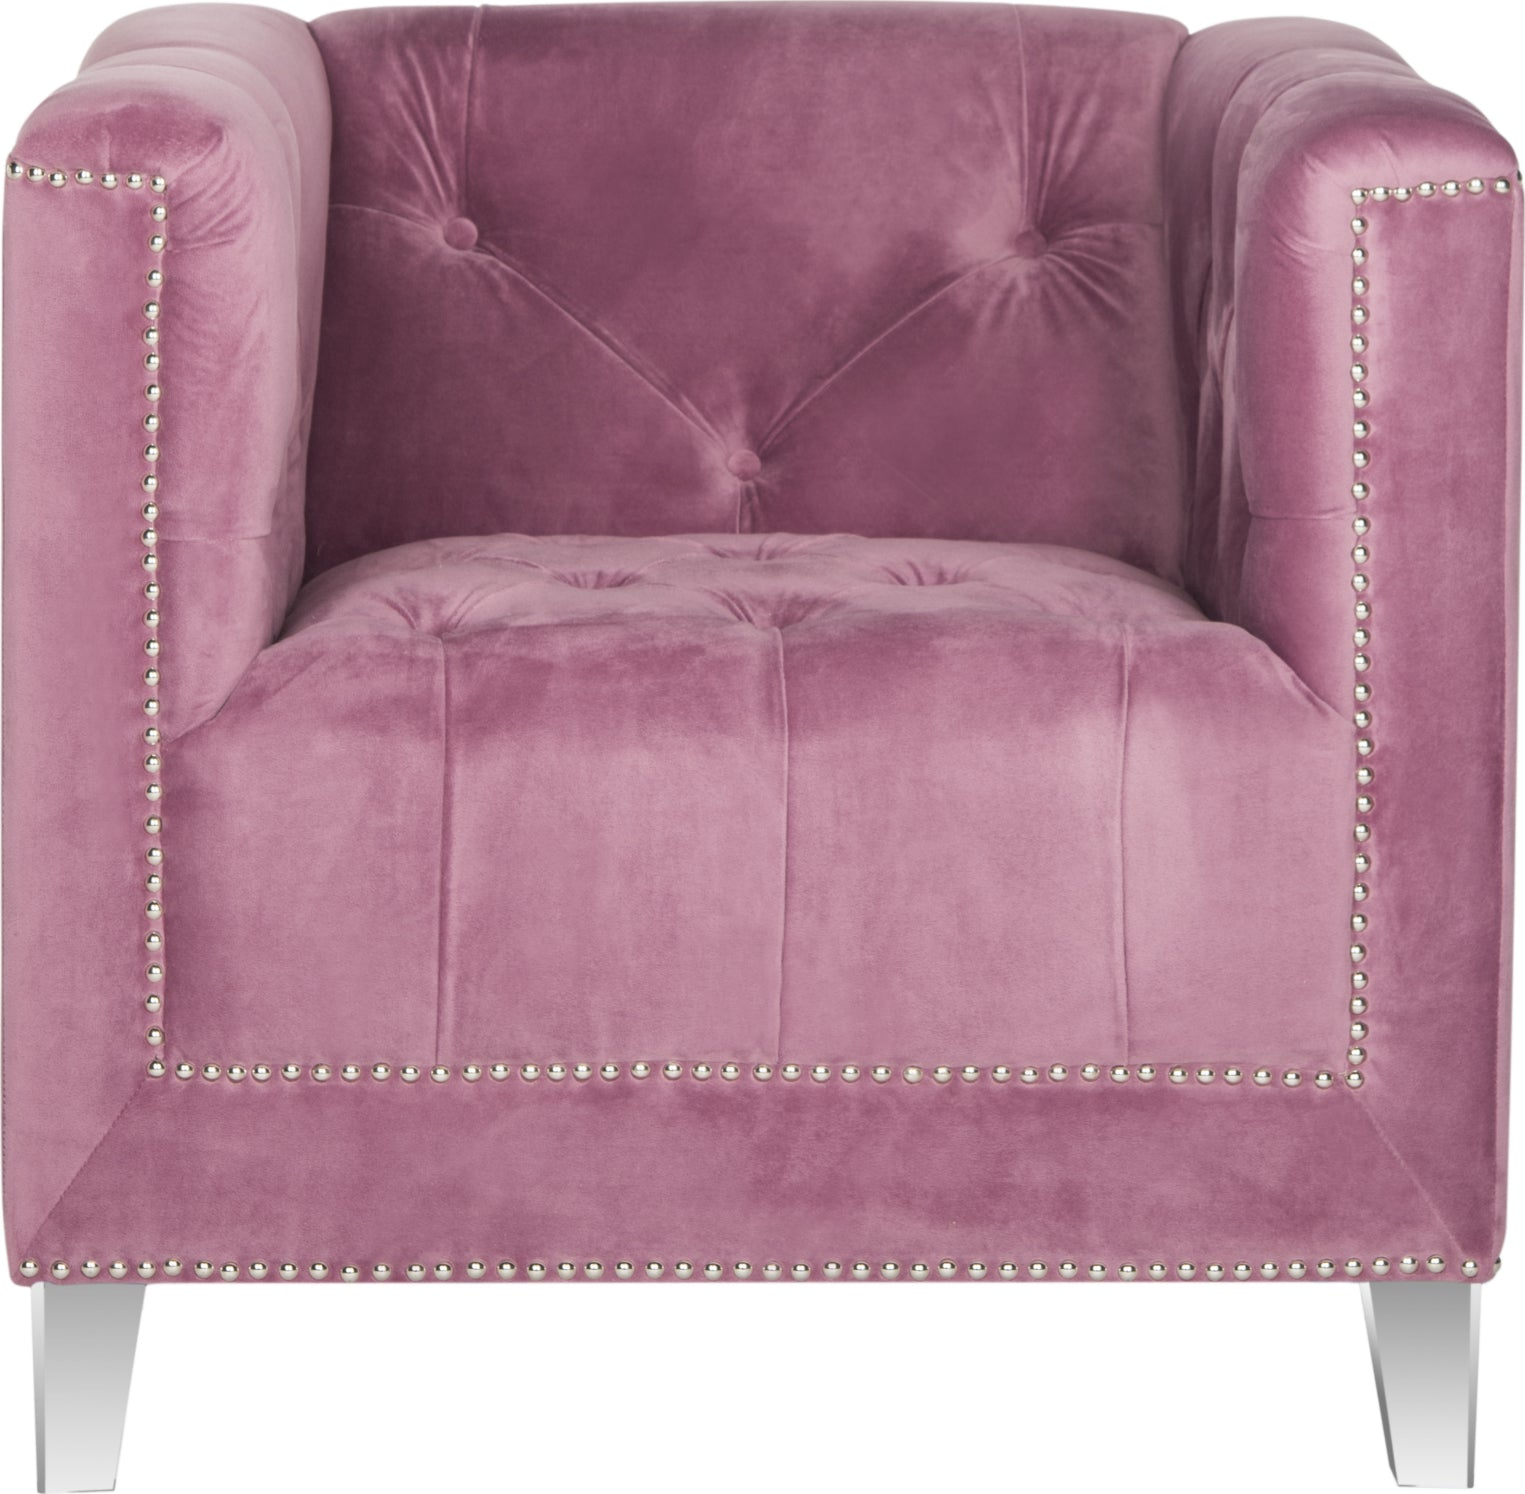 Safavieh Hollywood Glam Tufted Acrylic Plum Club Chair With Silver Nail Heads and Clear Furniture main image